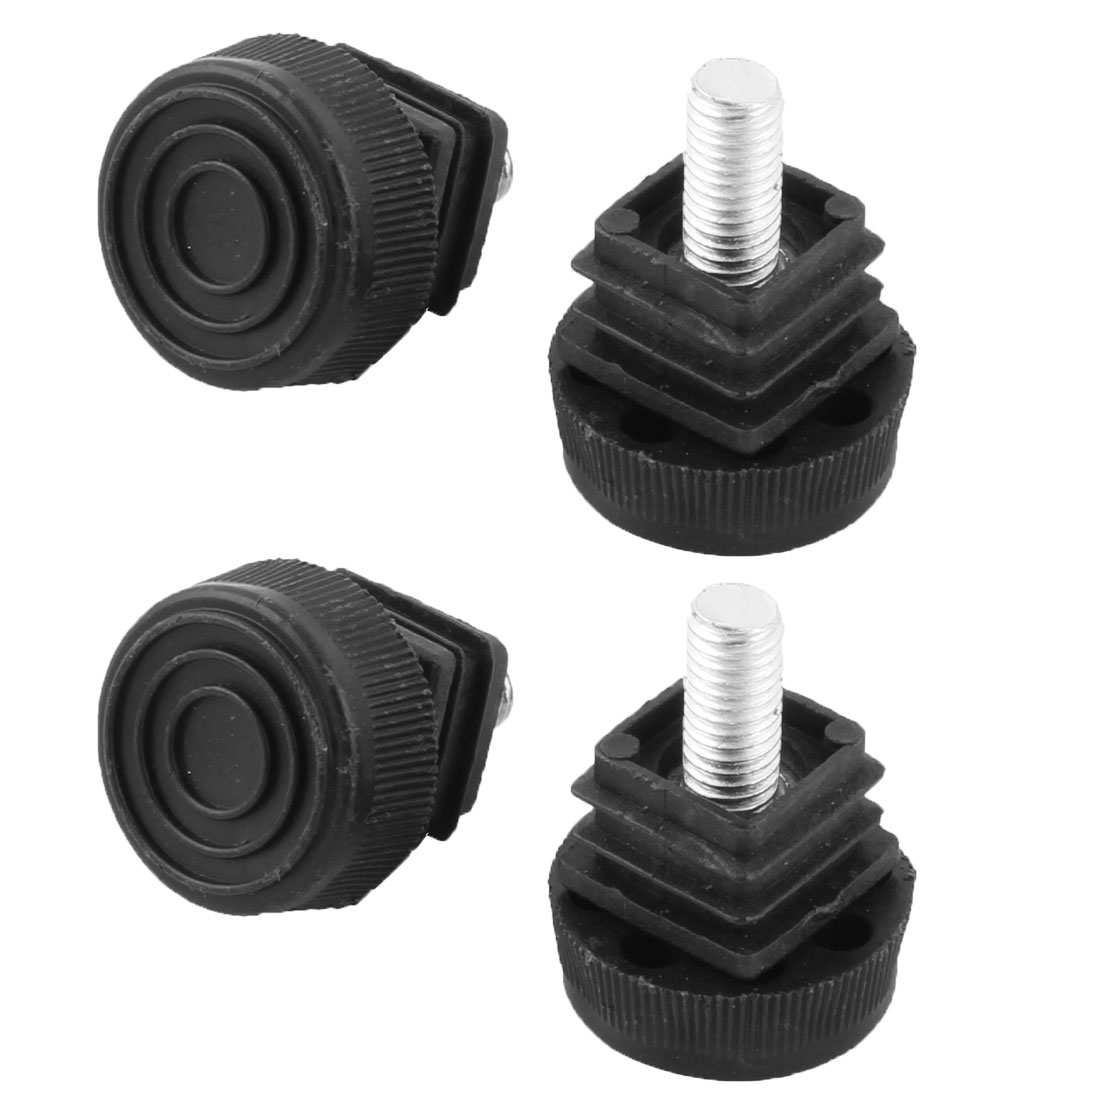 Plastic Chair Protector Adjustable Leveling Foot Tube Insert 4 Pcs